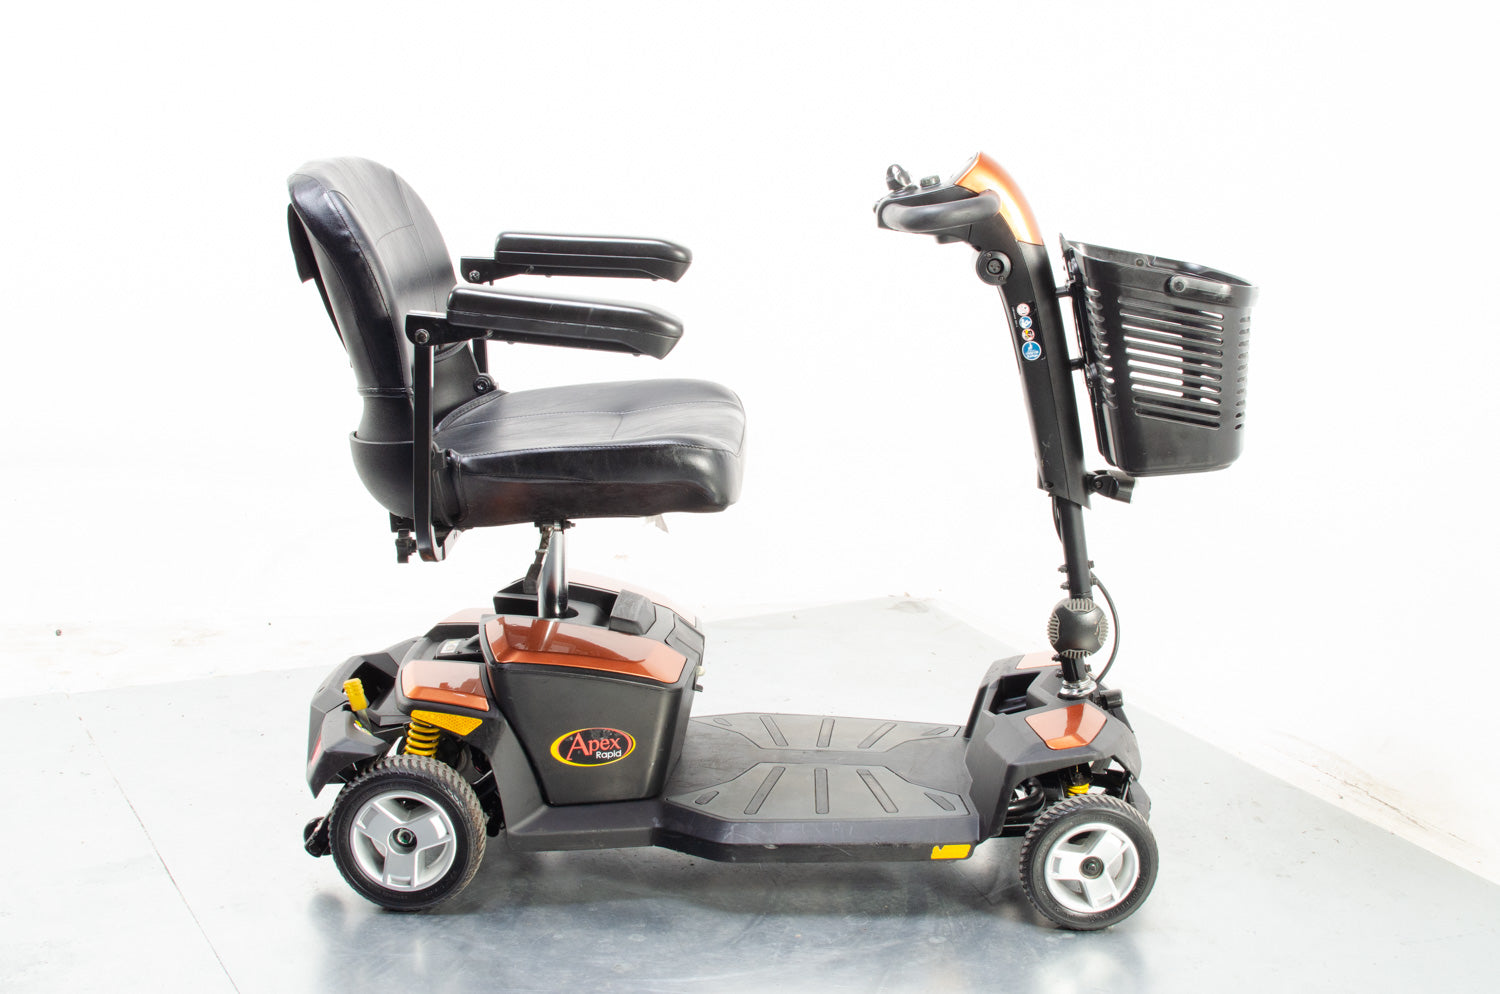 2018 Pride Apex Rapid 4mph Small Boot Mobility Scooter 18/22Ah